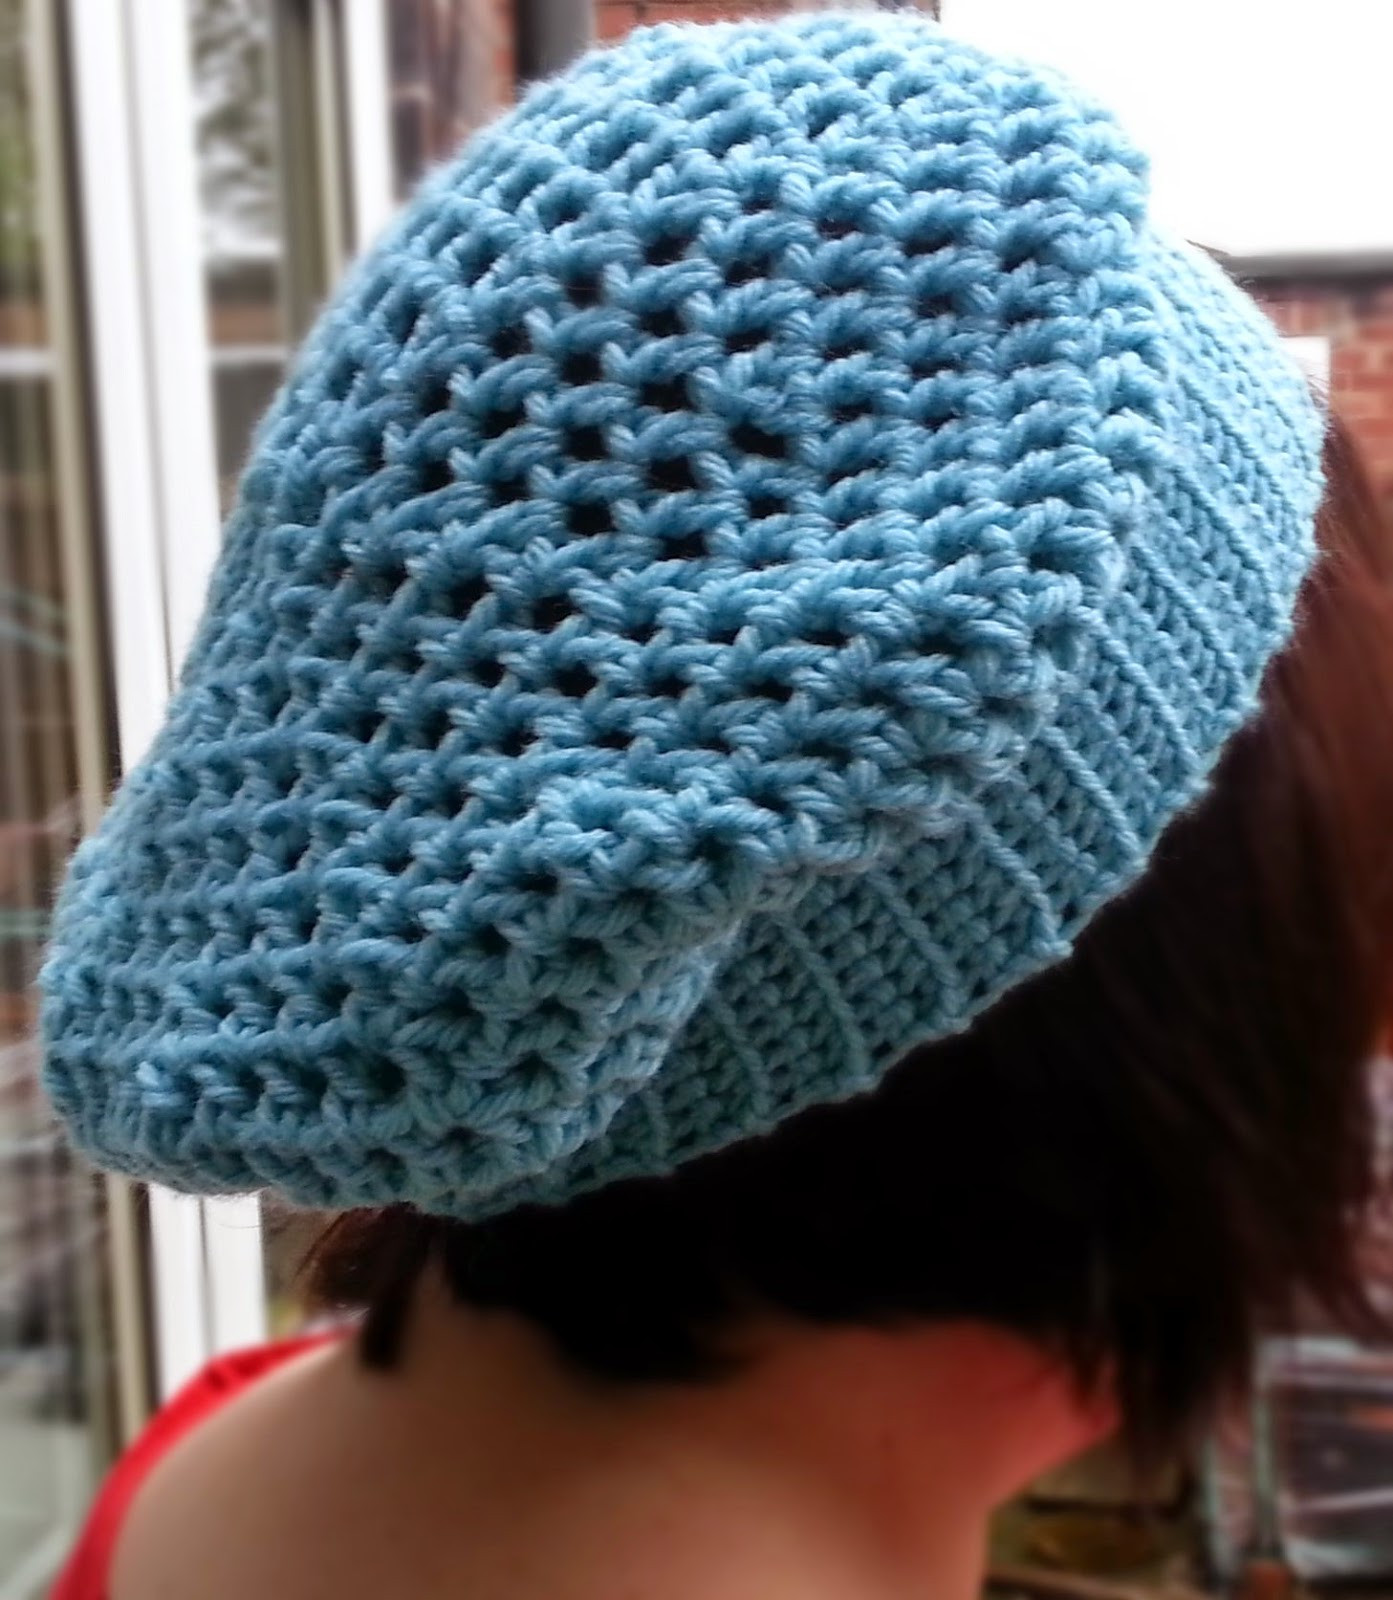 Elegant Hooking Crazy Quick and Easy Slouchy Easy Crochet Beanie Pattern Of Awesome A Variety Of Free Crochet Hat Patterns for Making Hats Easy Crochet Beanie Pattern